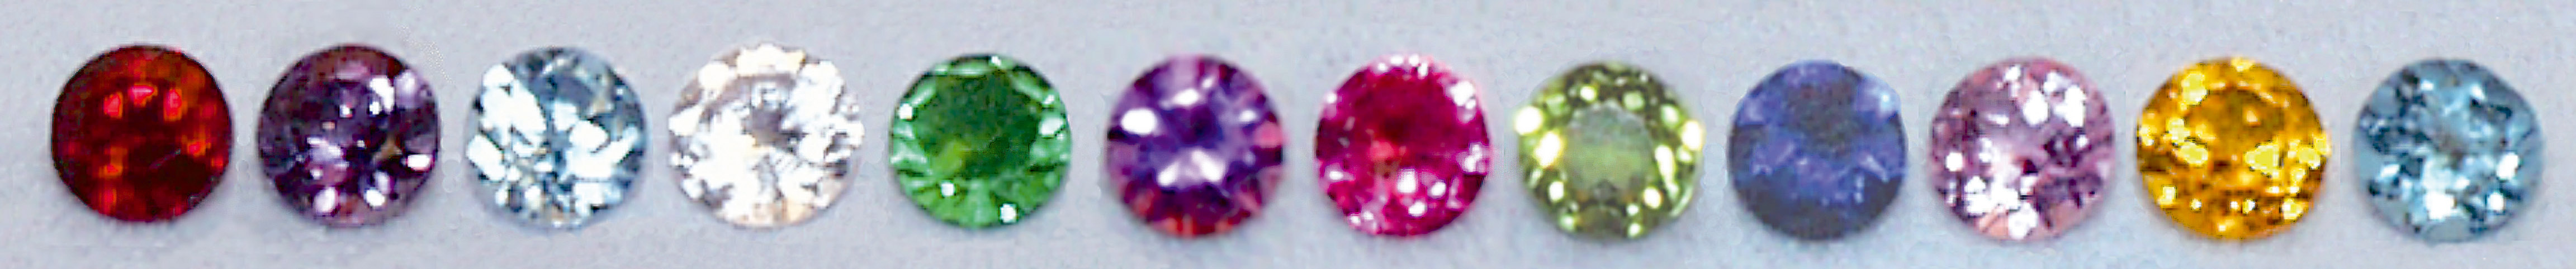 FB422/02 Genuine Swarovski Crystals/Foilbacks--Round FEBRUARY 5.4mm